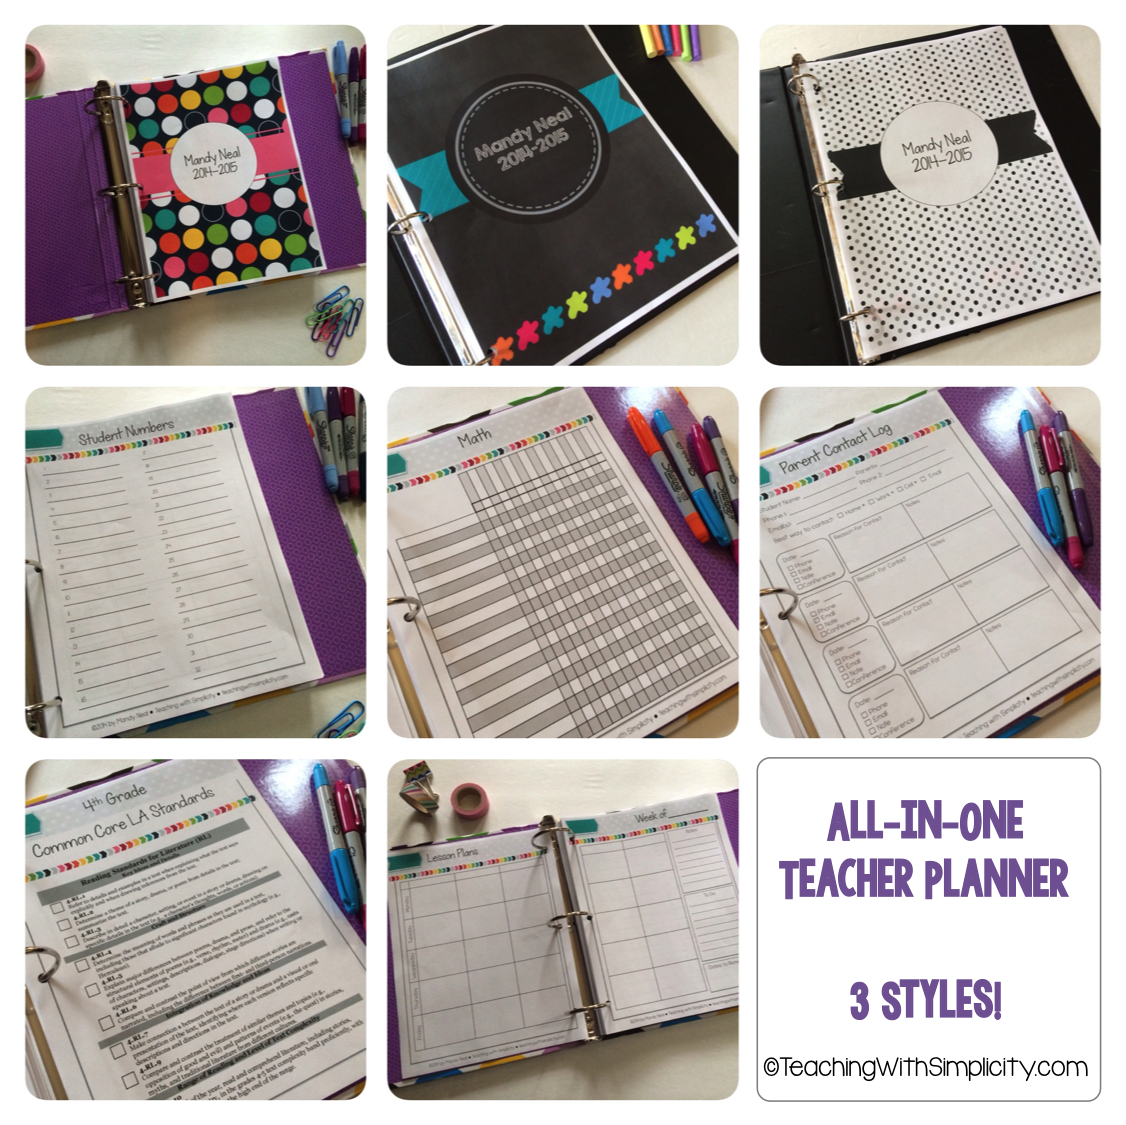 All-in-One Teacher Planner